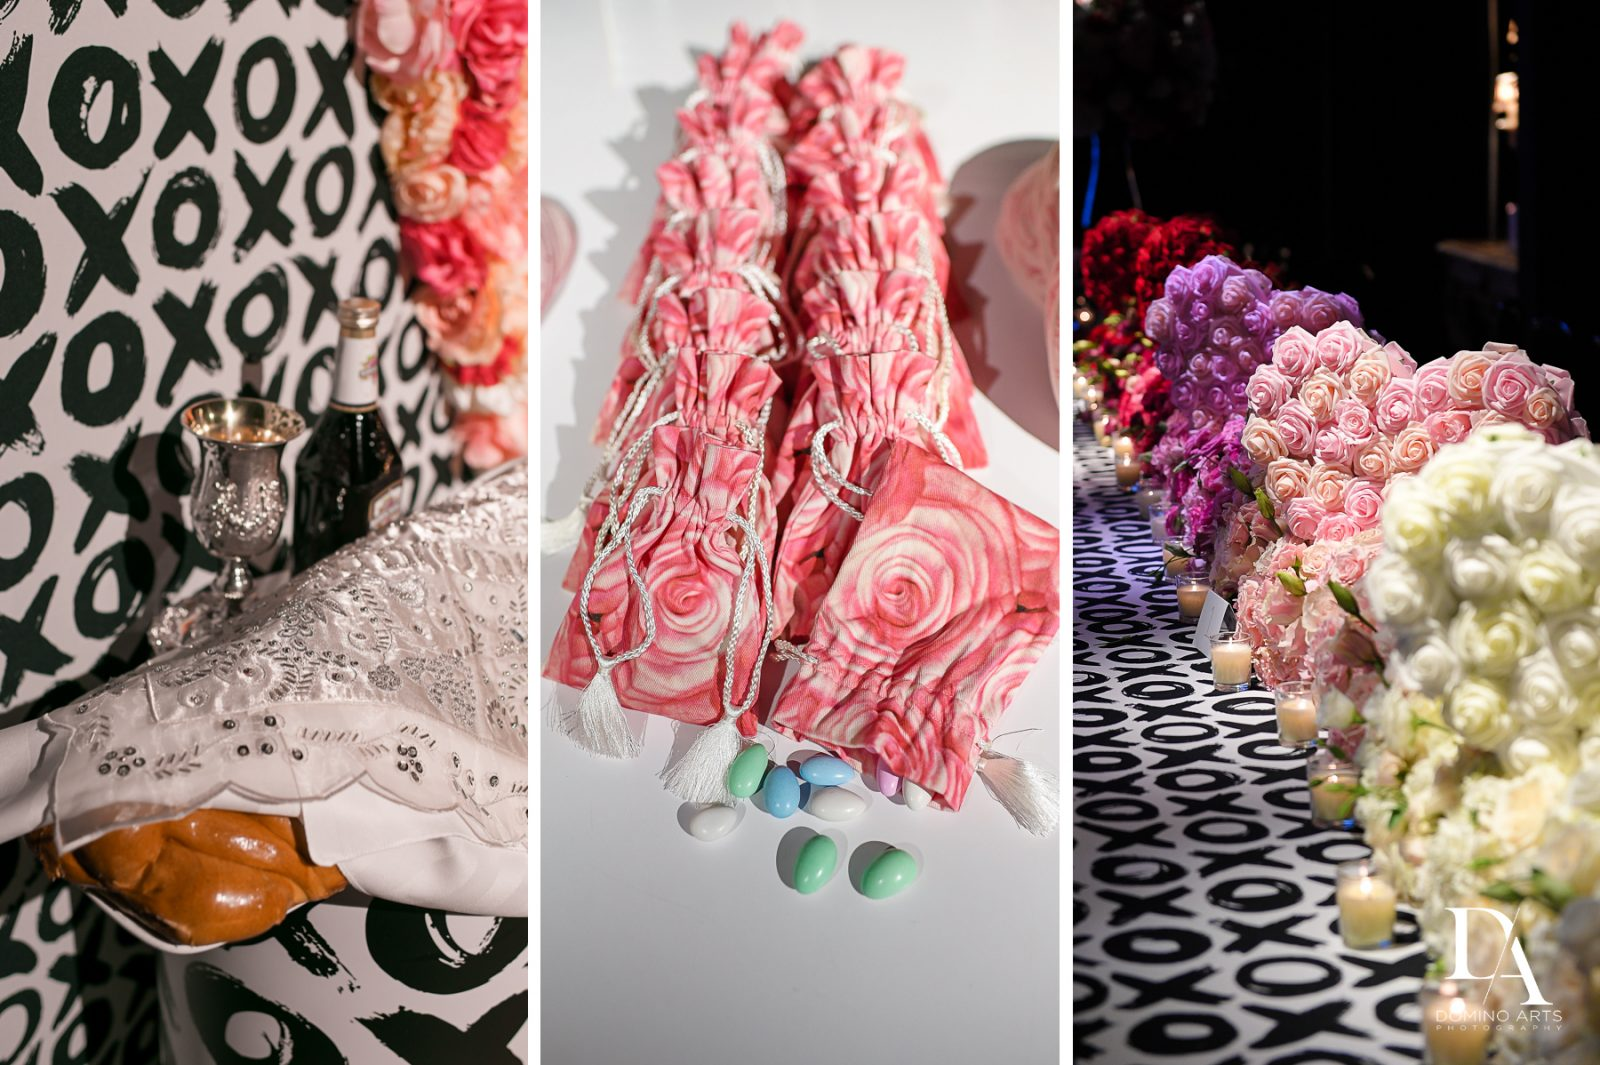 best details at Fashion Theme Bat Mitzvah at Gallery of Amazing Things by Domino Arts Photography